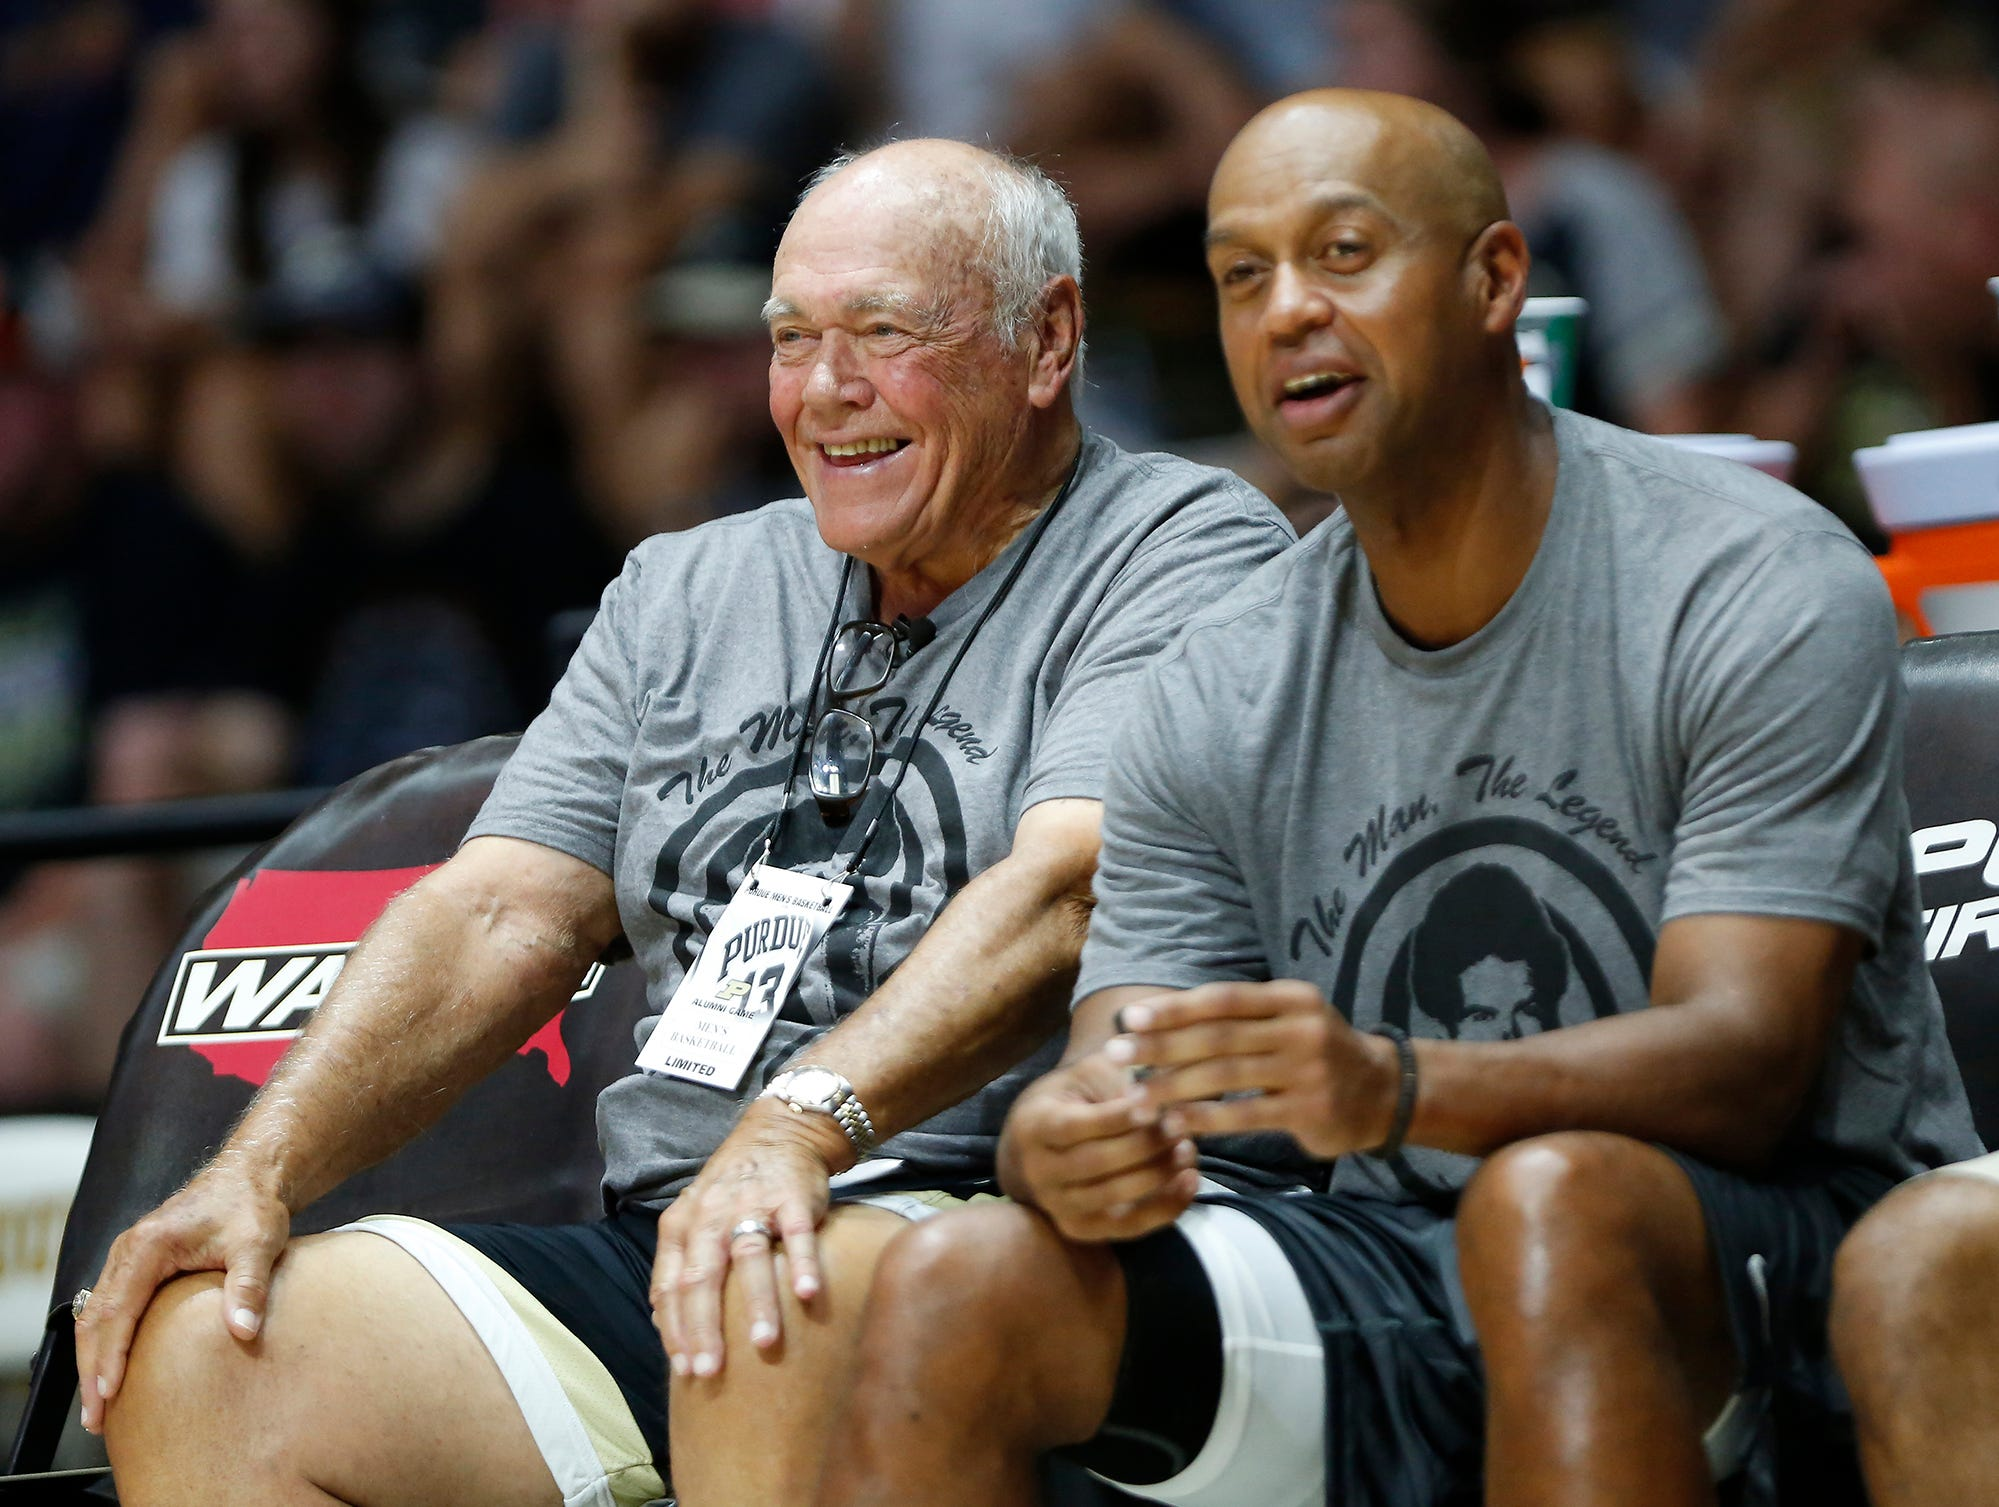 Black team coach Gene Keady laughs with Troy Lewis as they face the Gold team in the Purdue Alumni basketball game Saturday, August 4, 2018, at Mackey Arena. The Black team defeated the Gold 101-91.